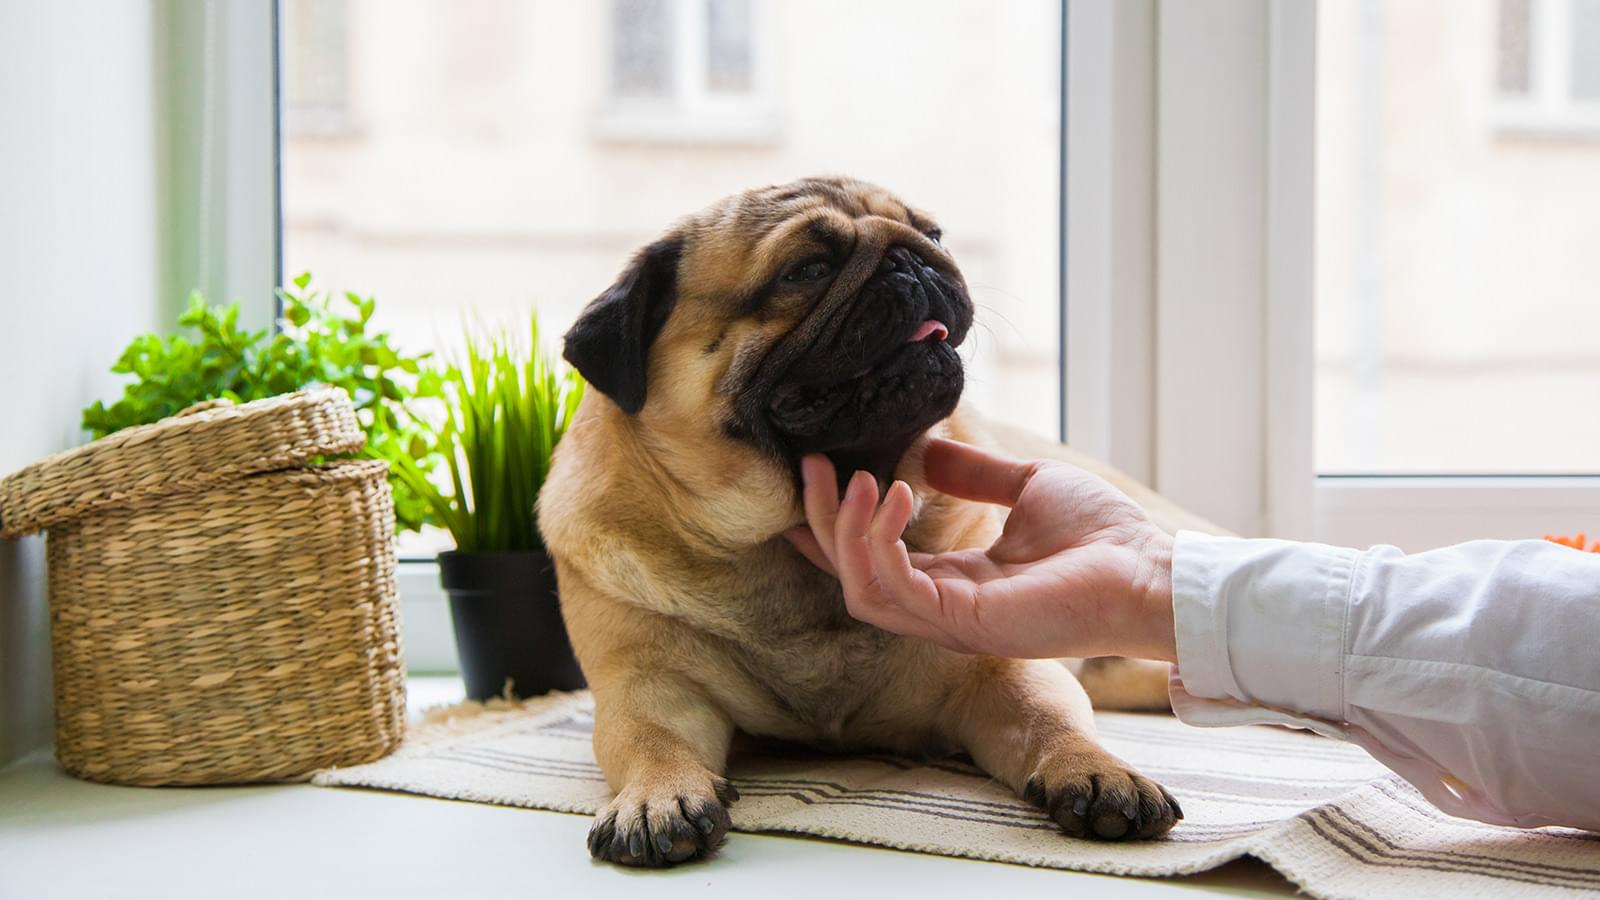 Animals will love ample balcony space and close proximity to expansive greenscapes.